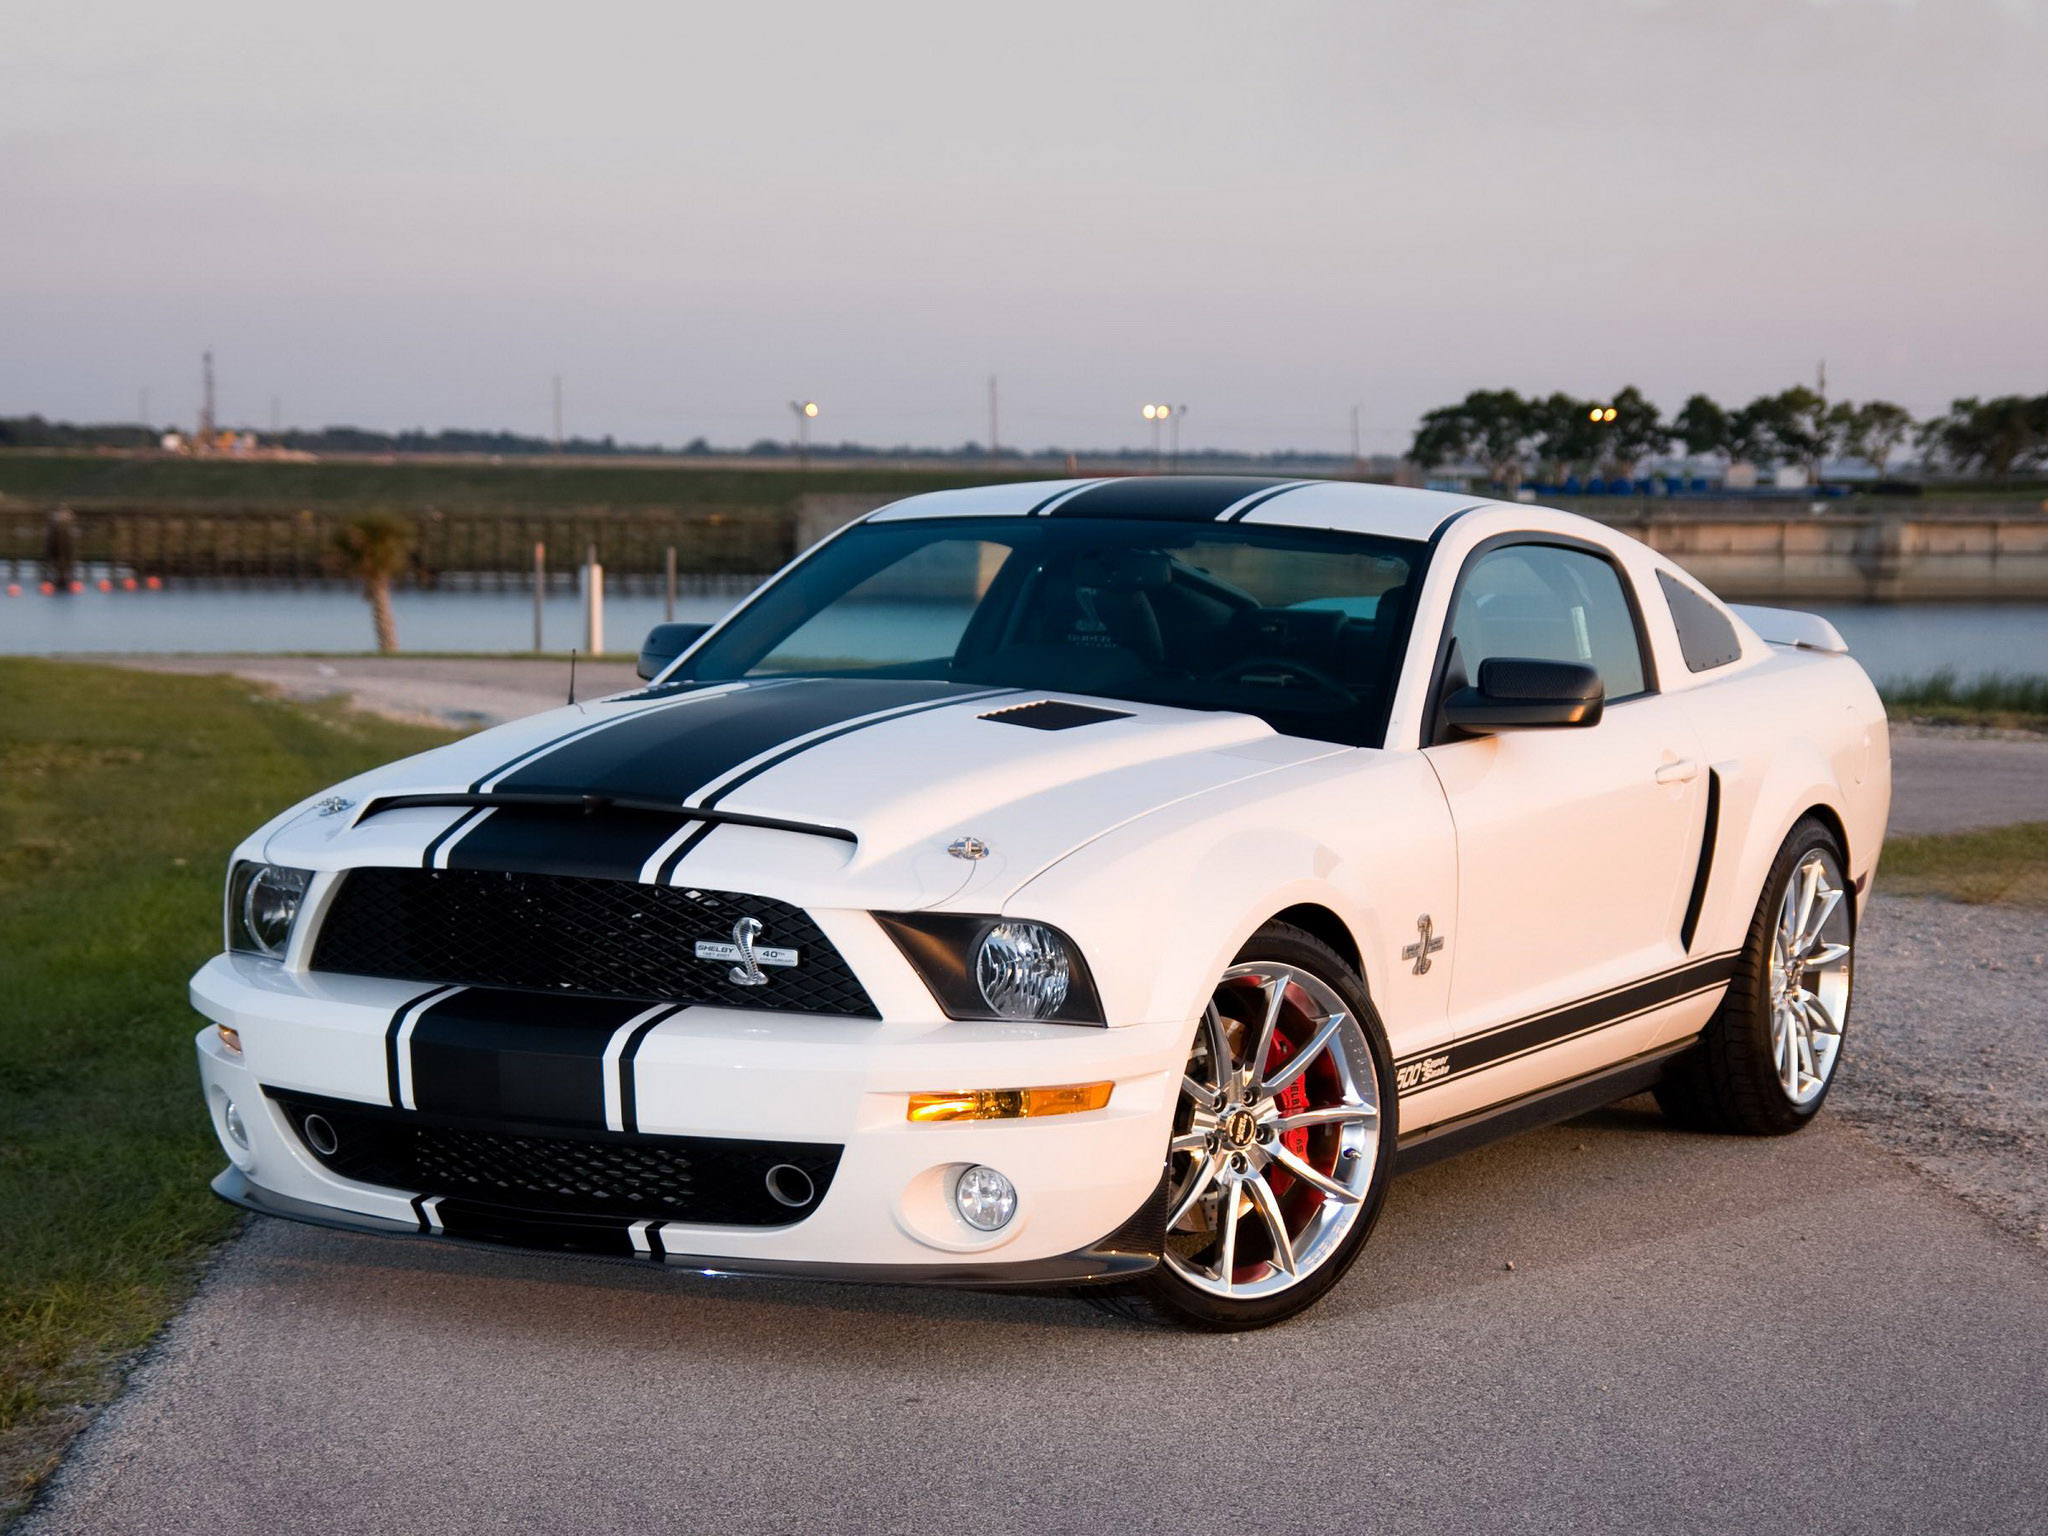 Shelby Ford Mustang GT500 Super Snake Shelby Ford Mustang GT500 Super